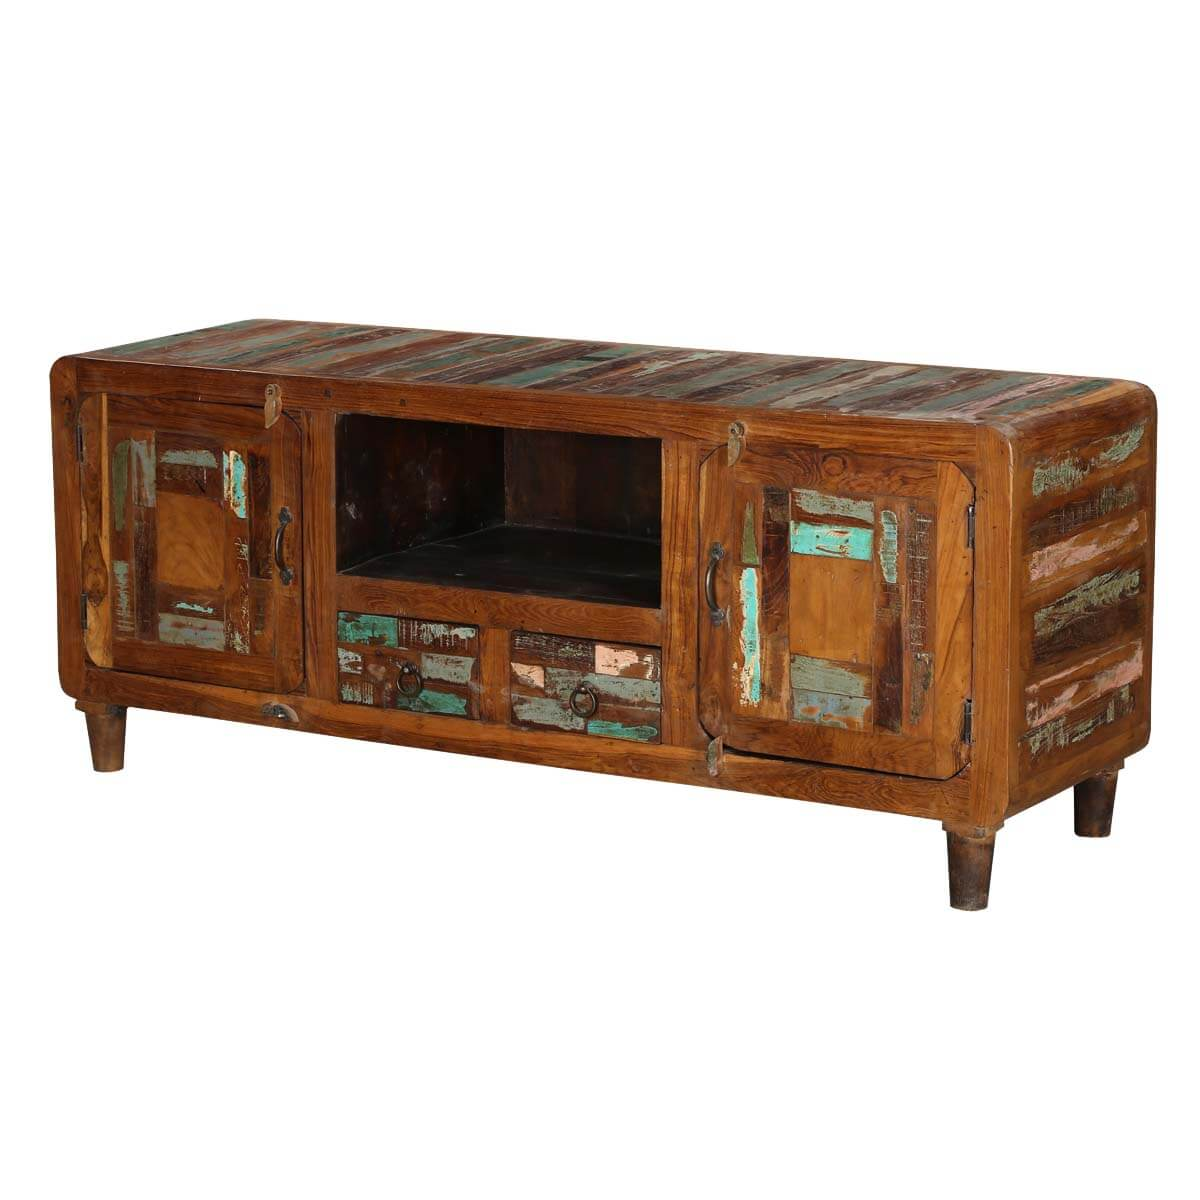 Tangier 59 Mosaic 2 Door Solid Wood Rustic Media Console